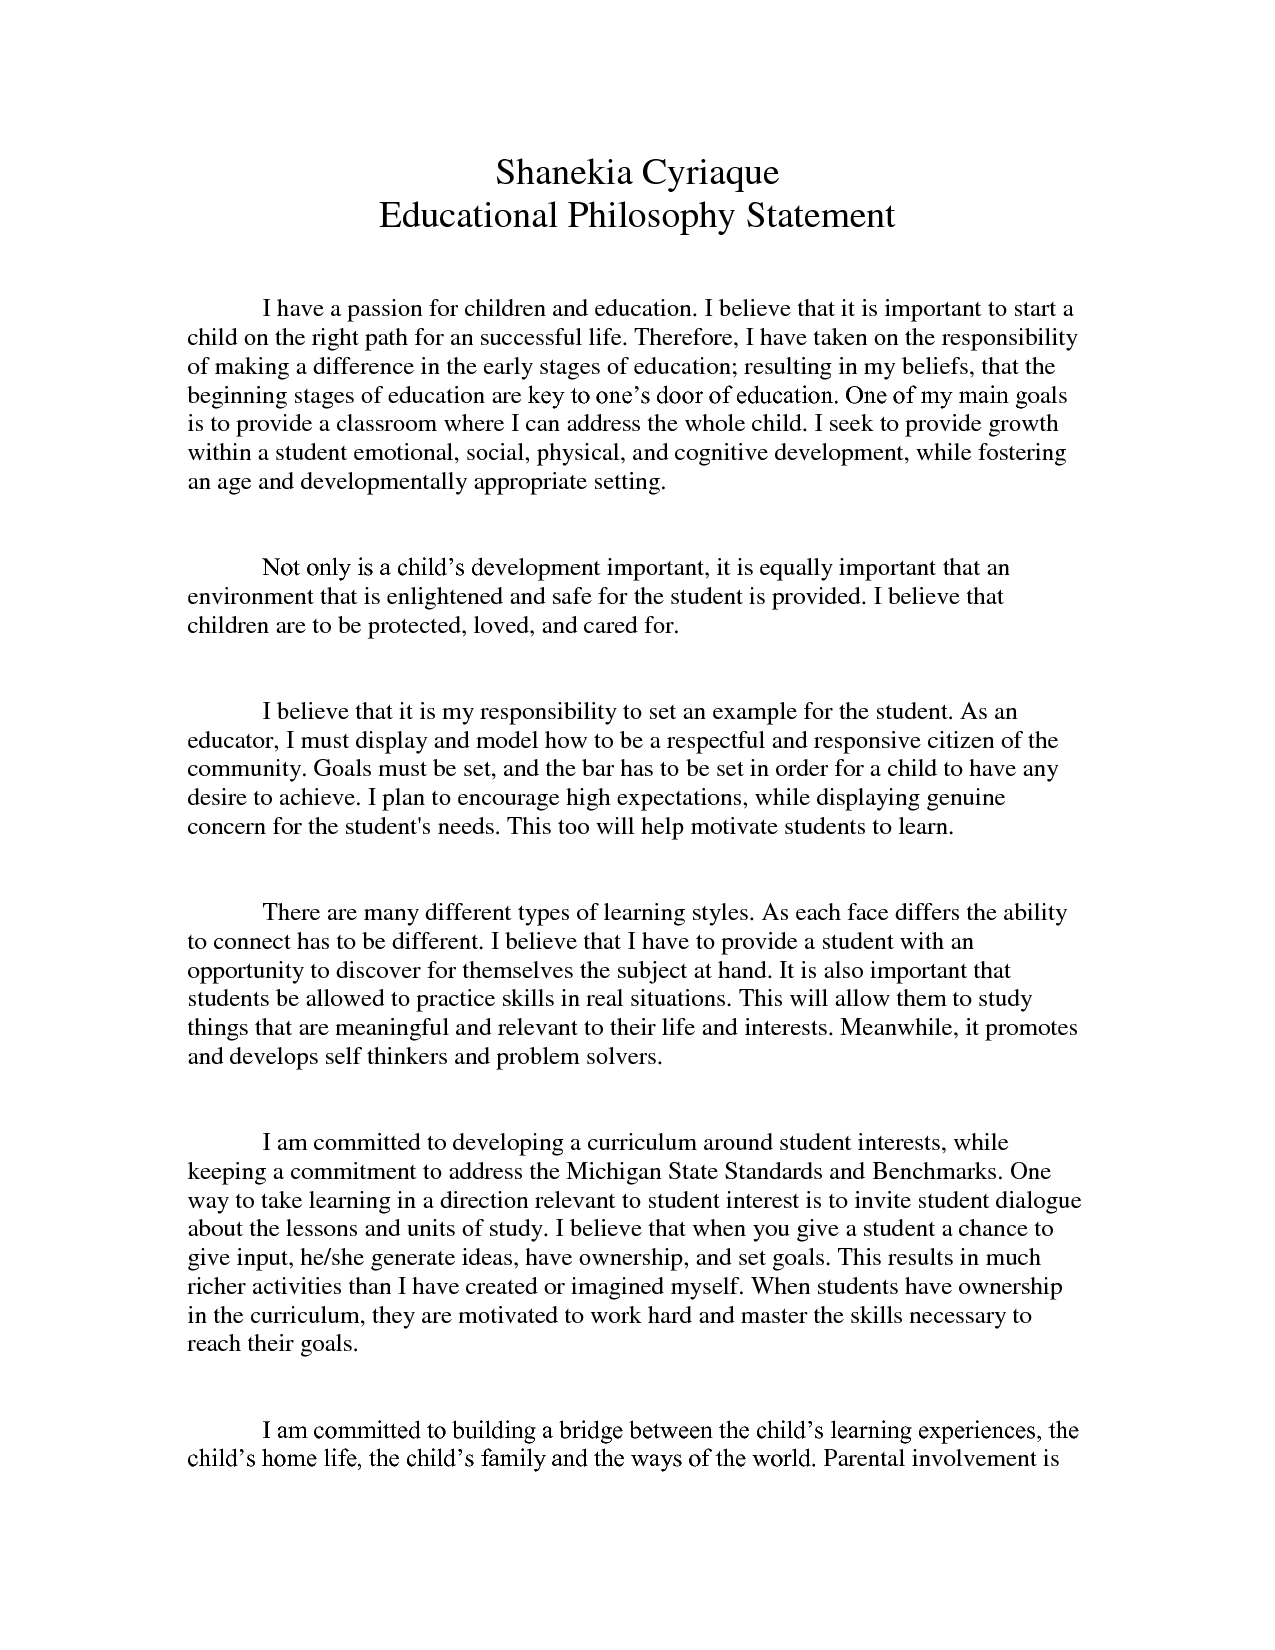 term papers teaching philosophy